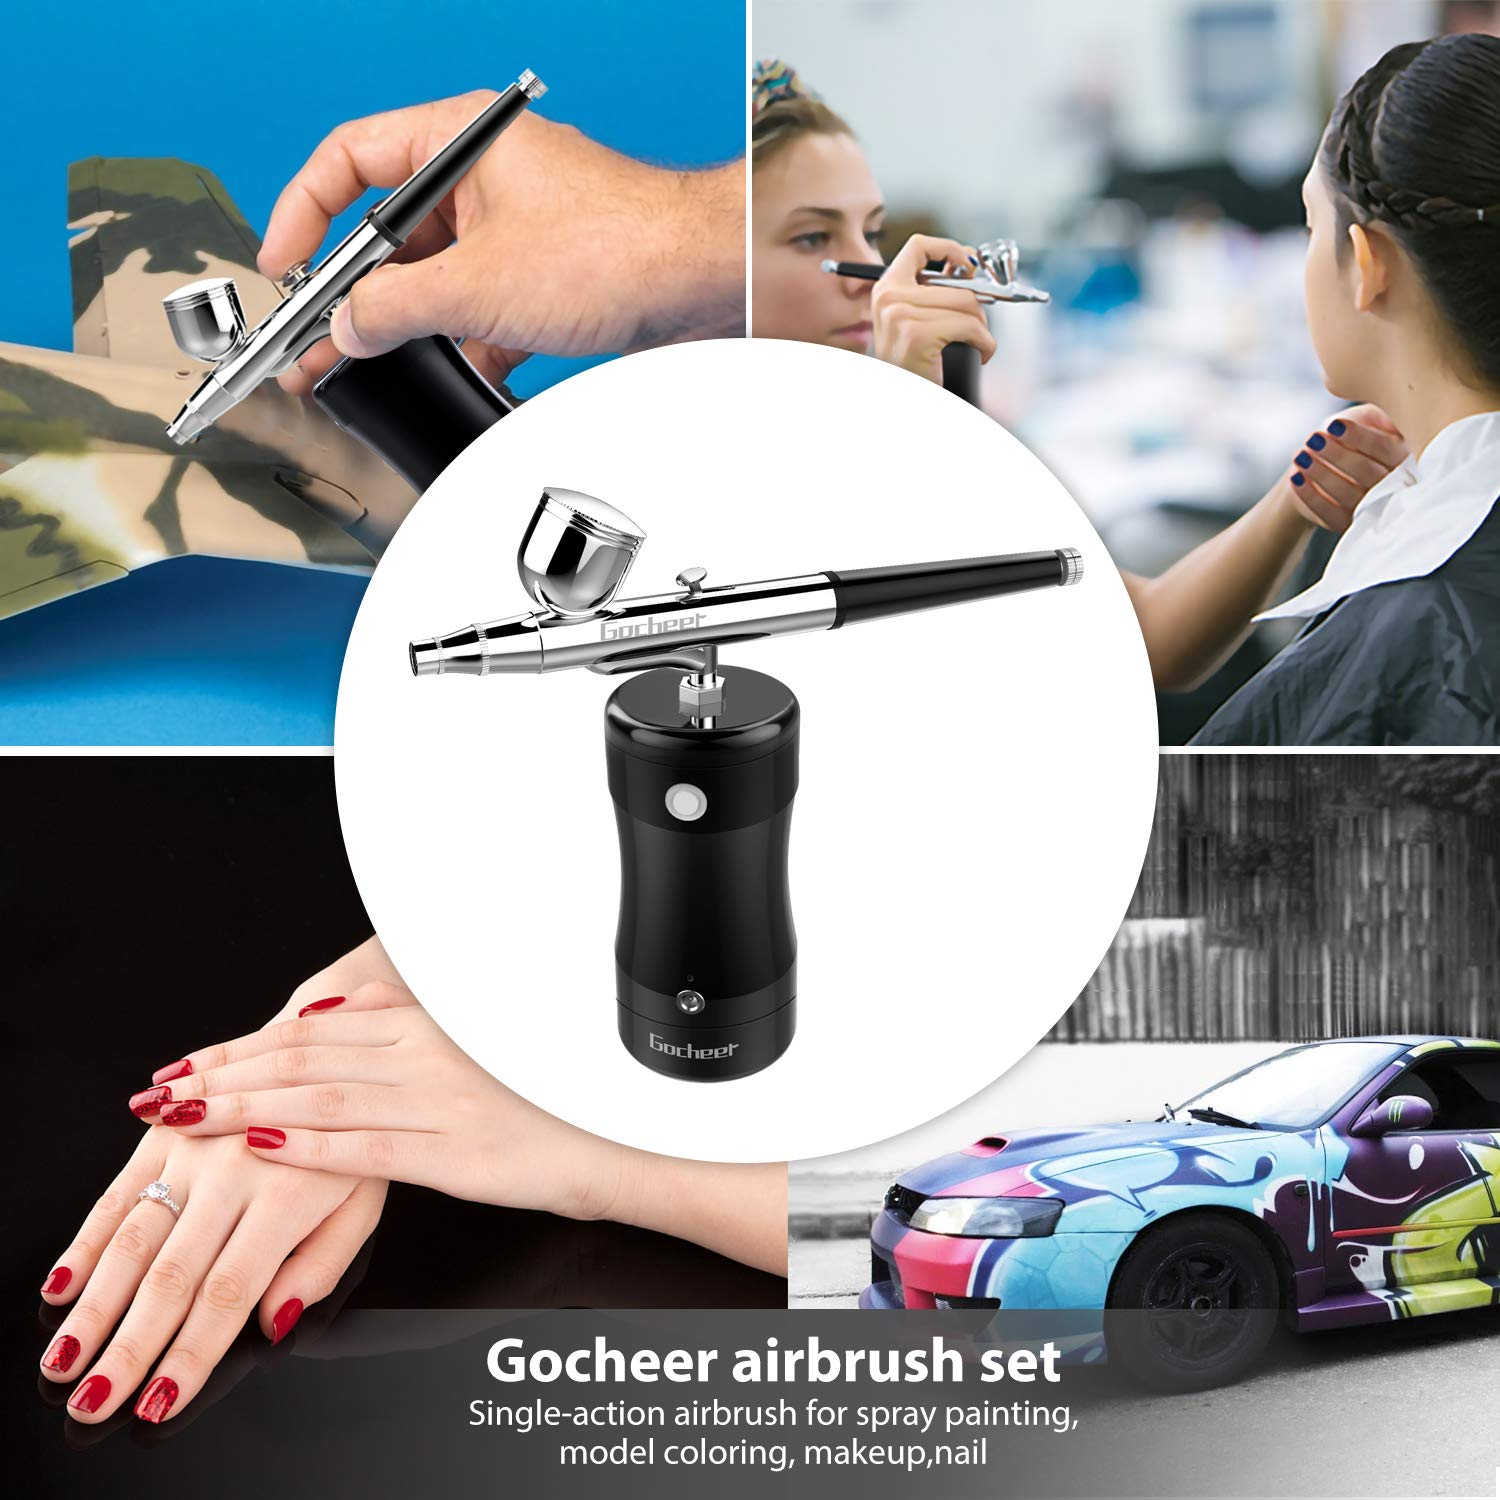 Gocheer Airbrush Set, Mini Portable Airbrush with USB Paint Spray Gun for Art Painting Tattoo Manicure Cakes Spray Model with Low Noise, DIY Tool